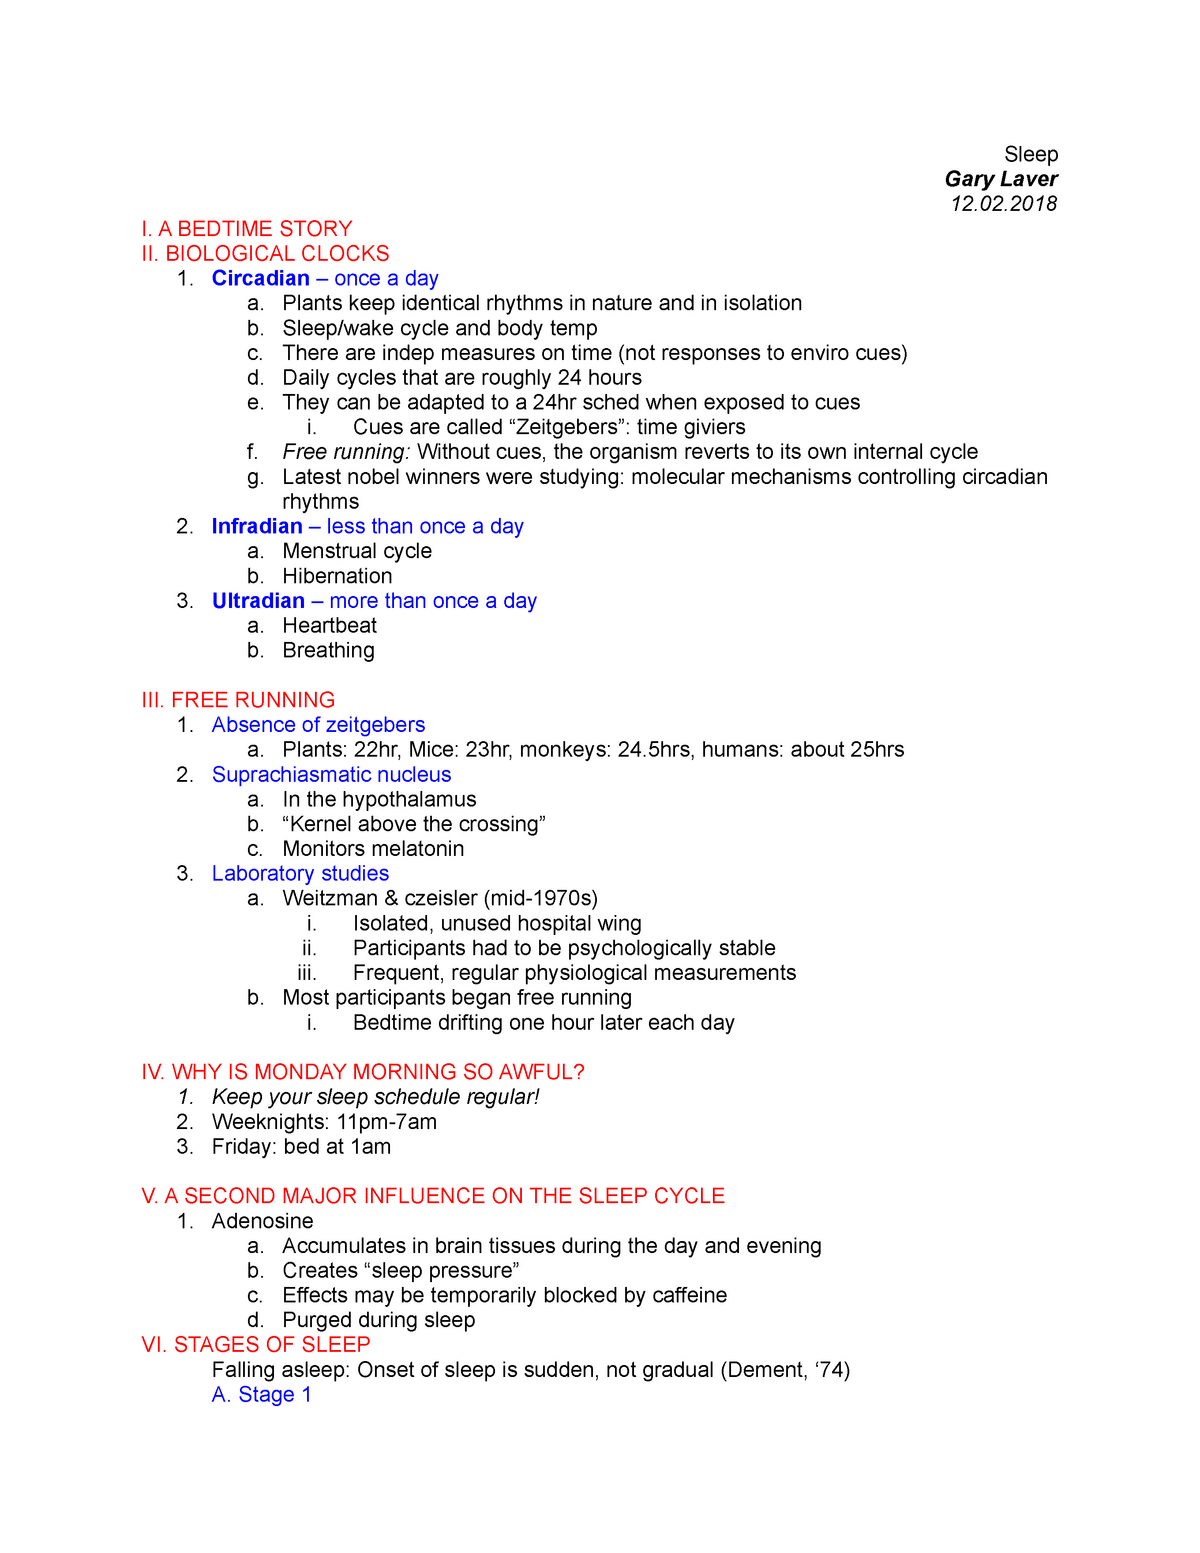 PSY 202 Sleep - Lecture notes 1 - PSY 202 General Psychology